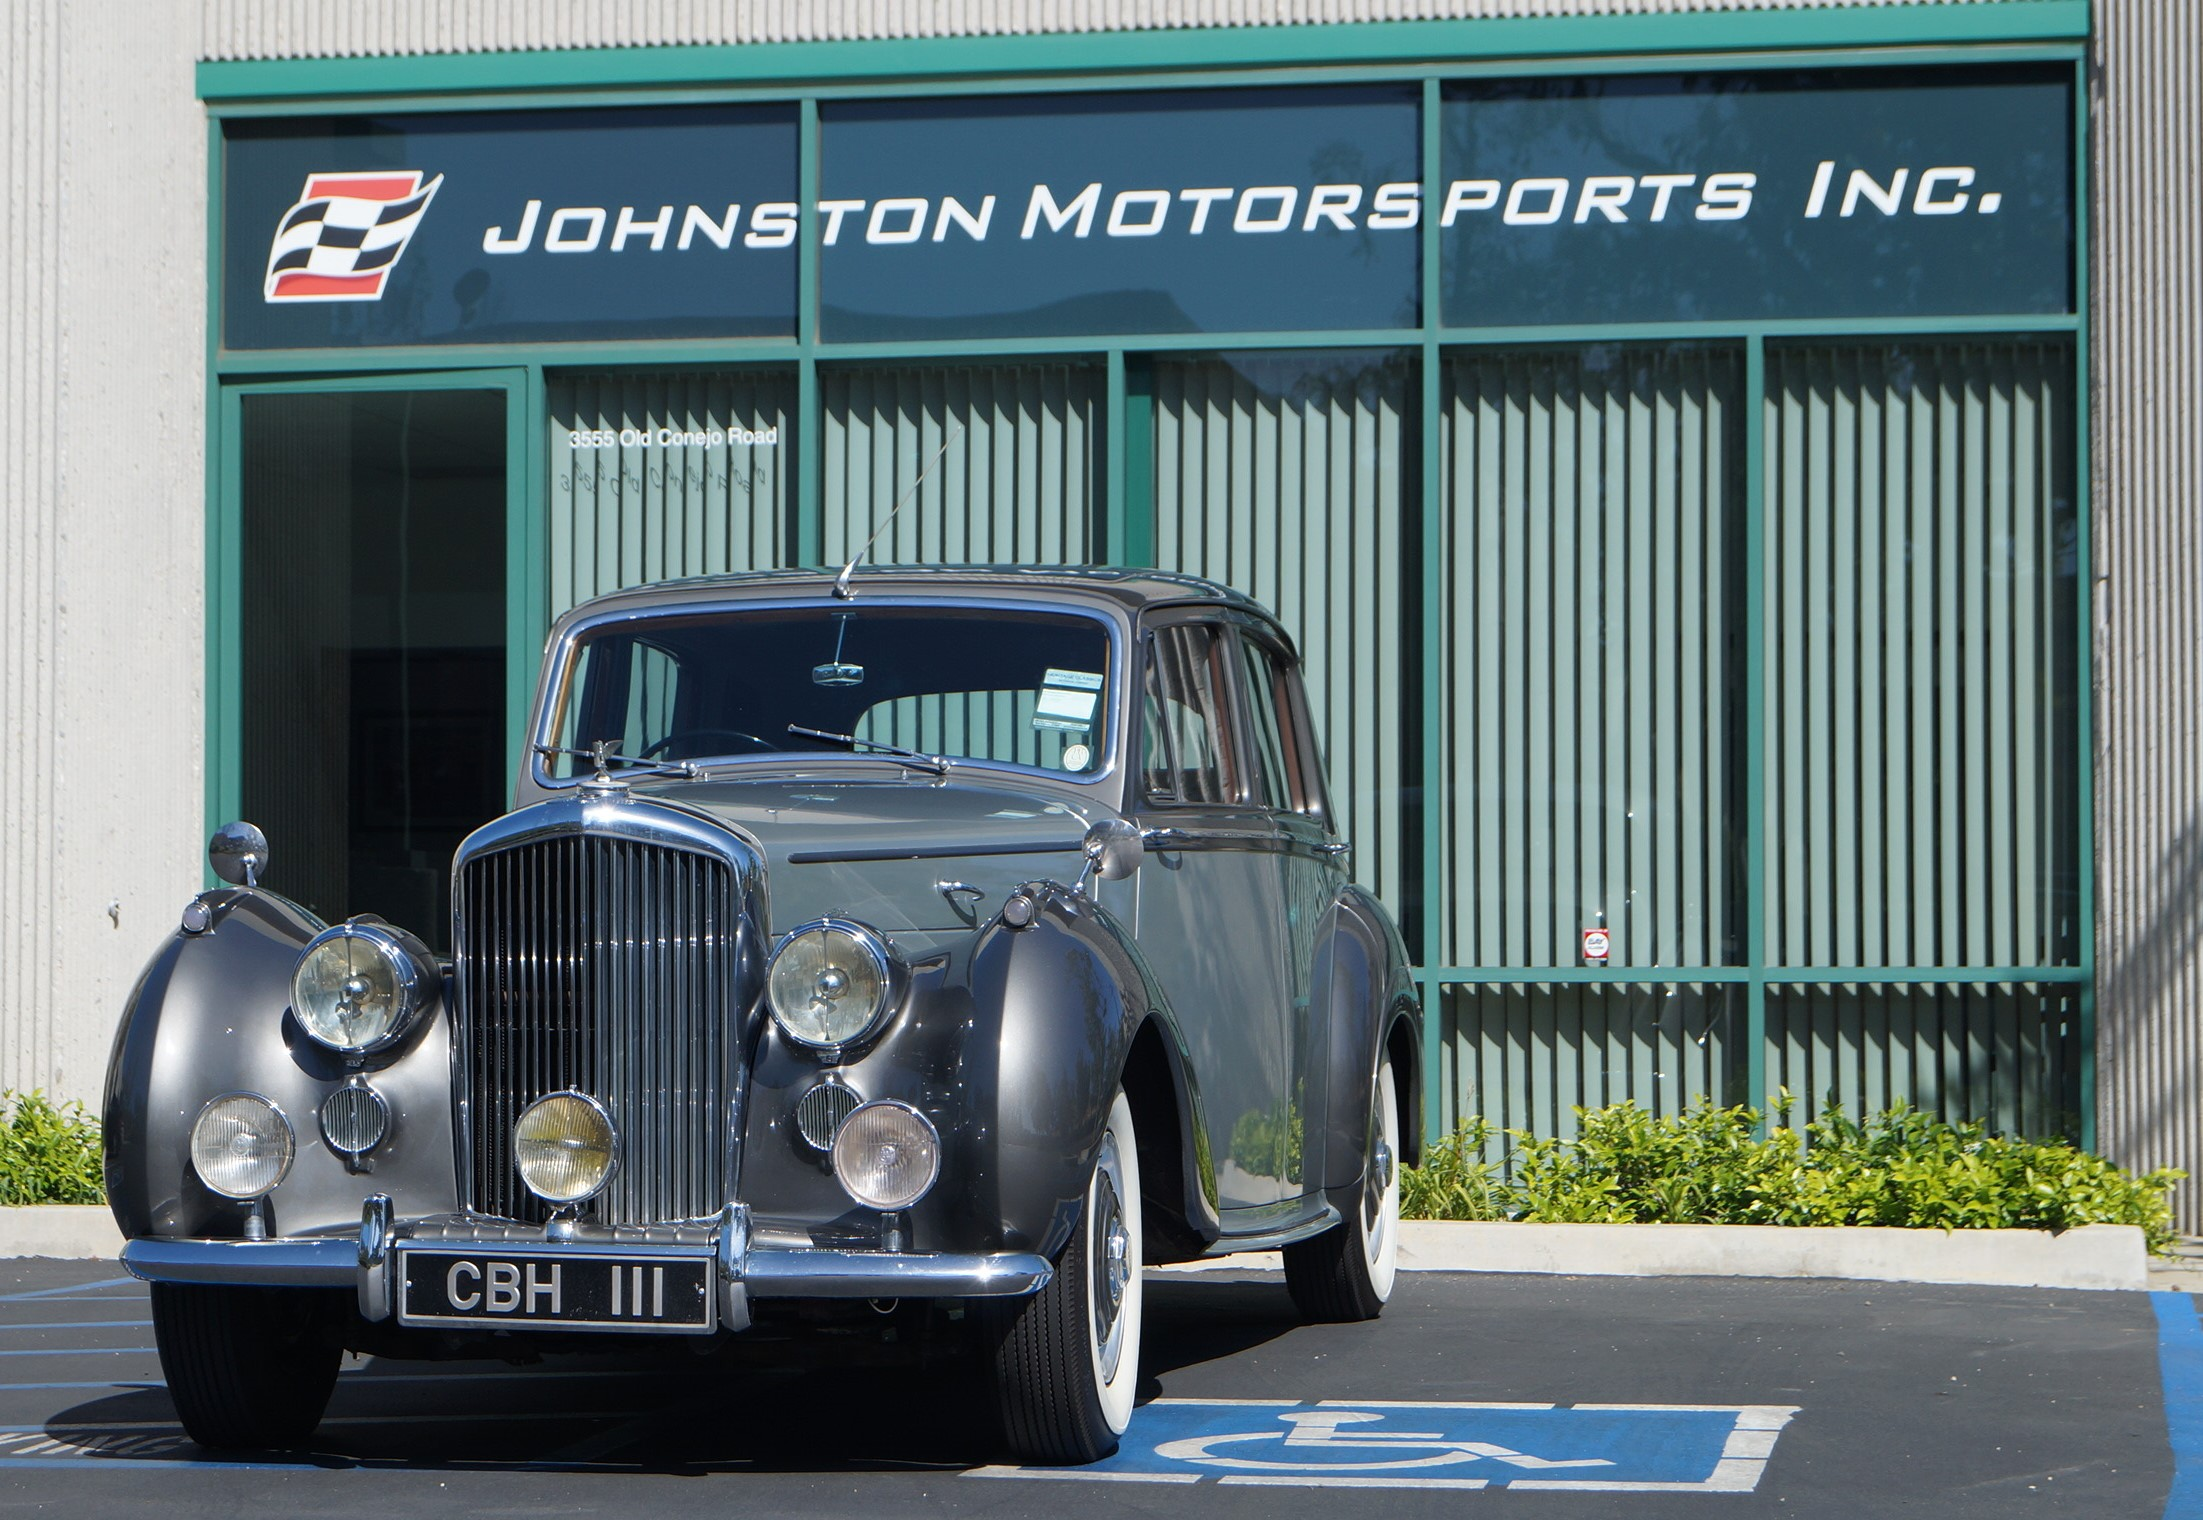 Vintage car at Johnston Motorsports